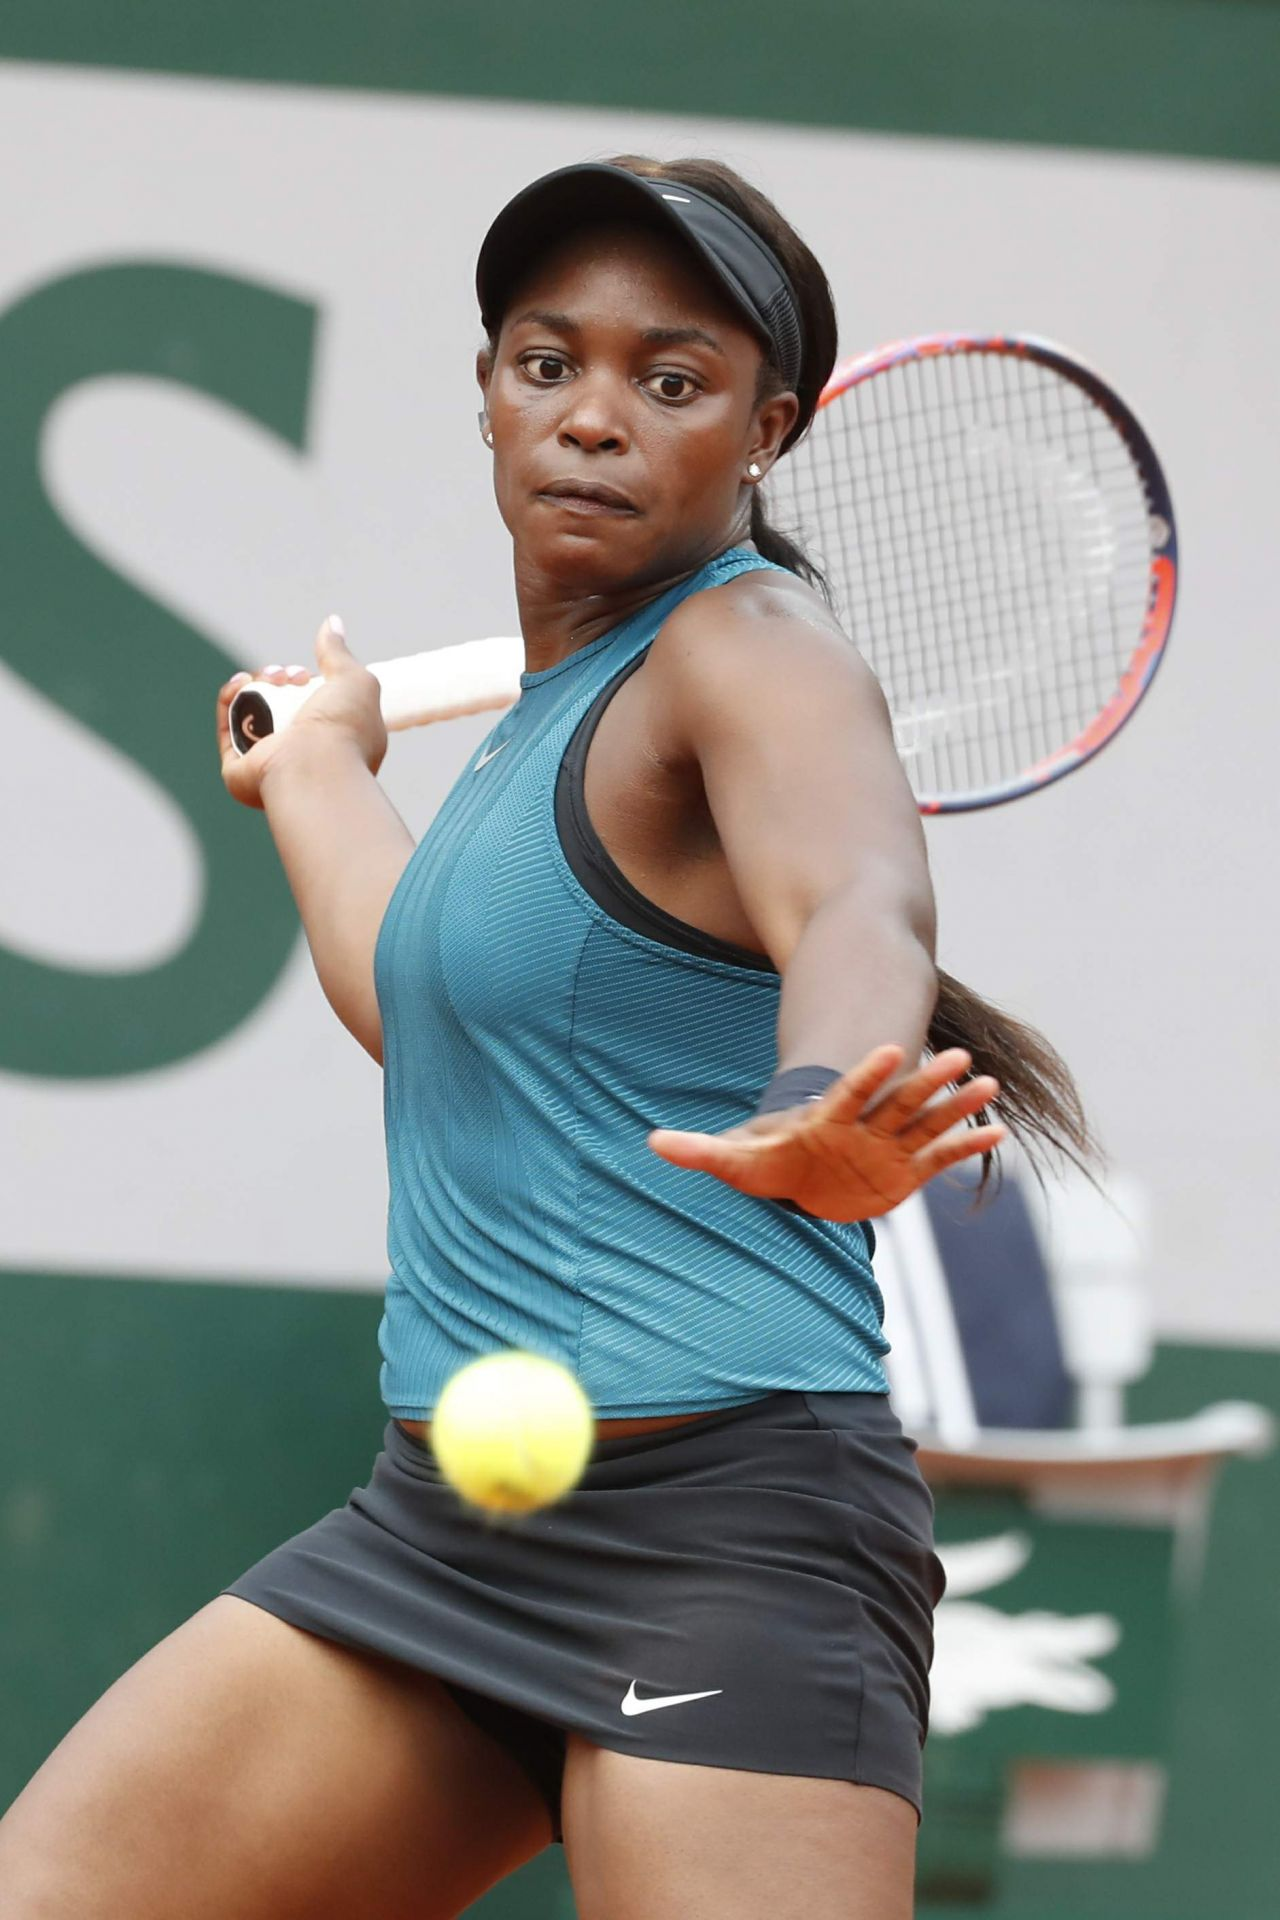 Sloane Stephens Latest Photos - CelebMafia